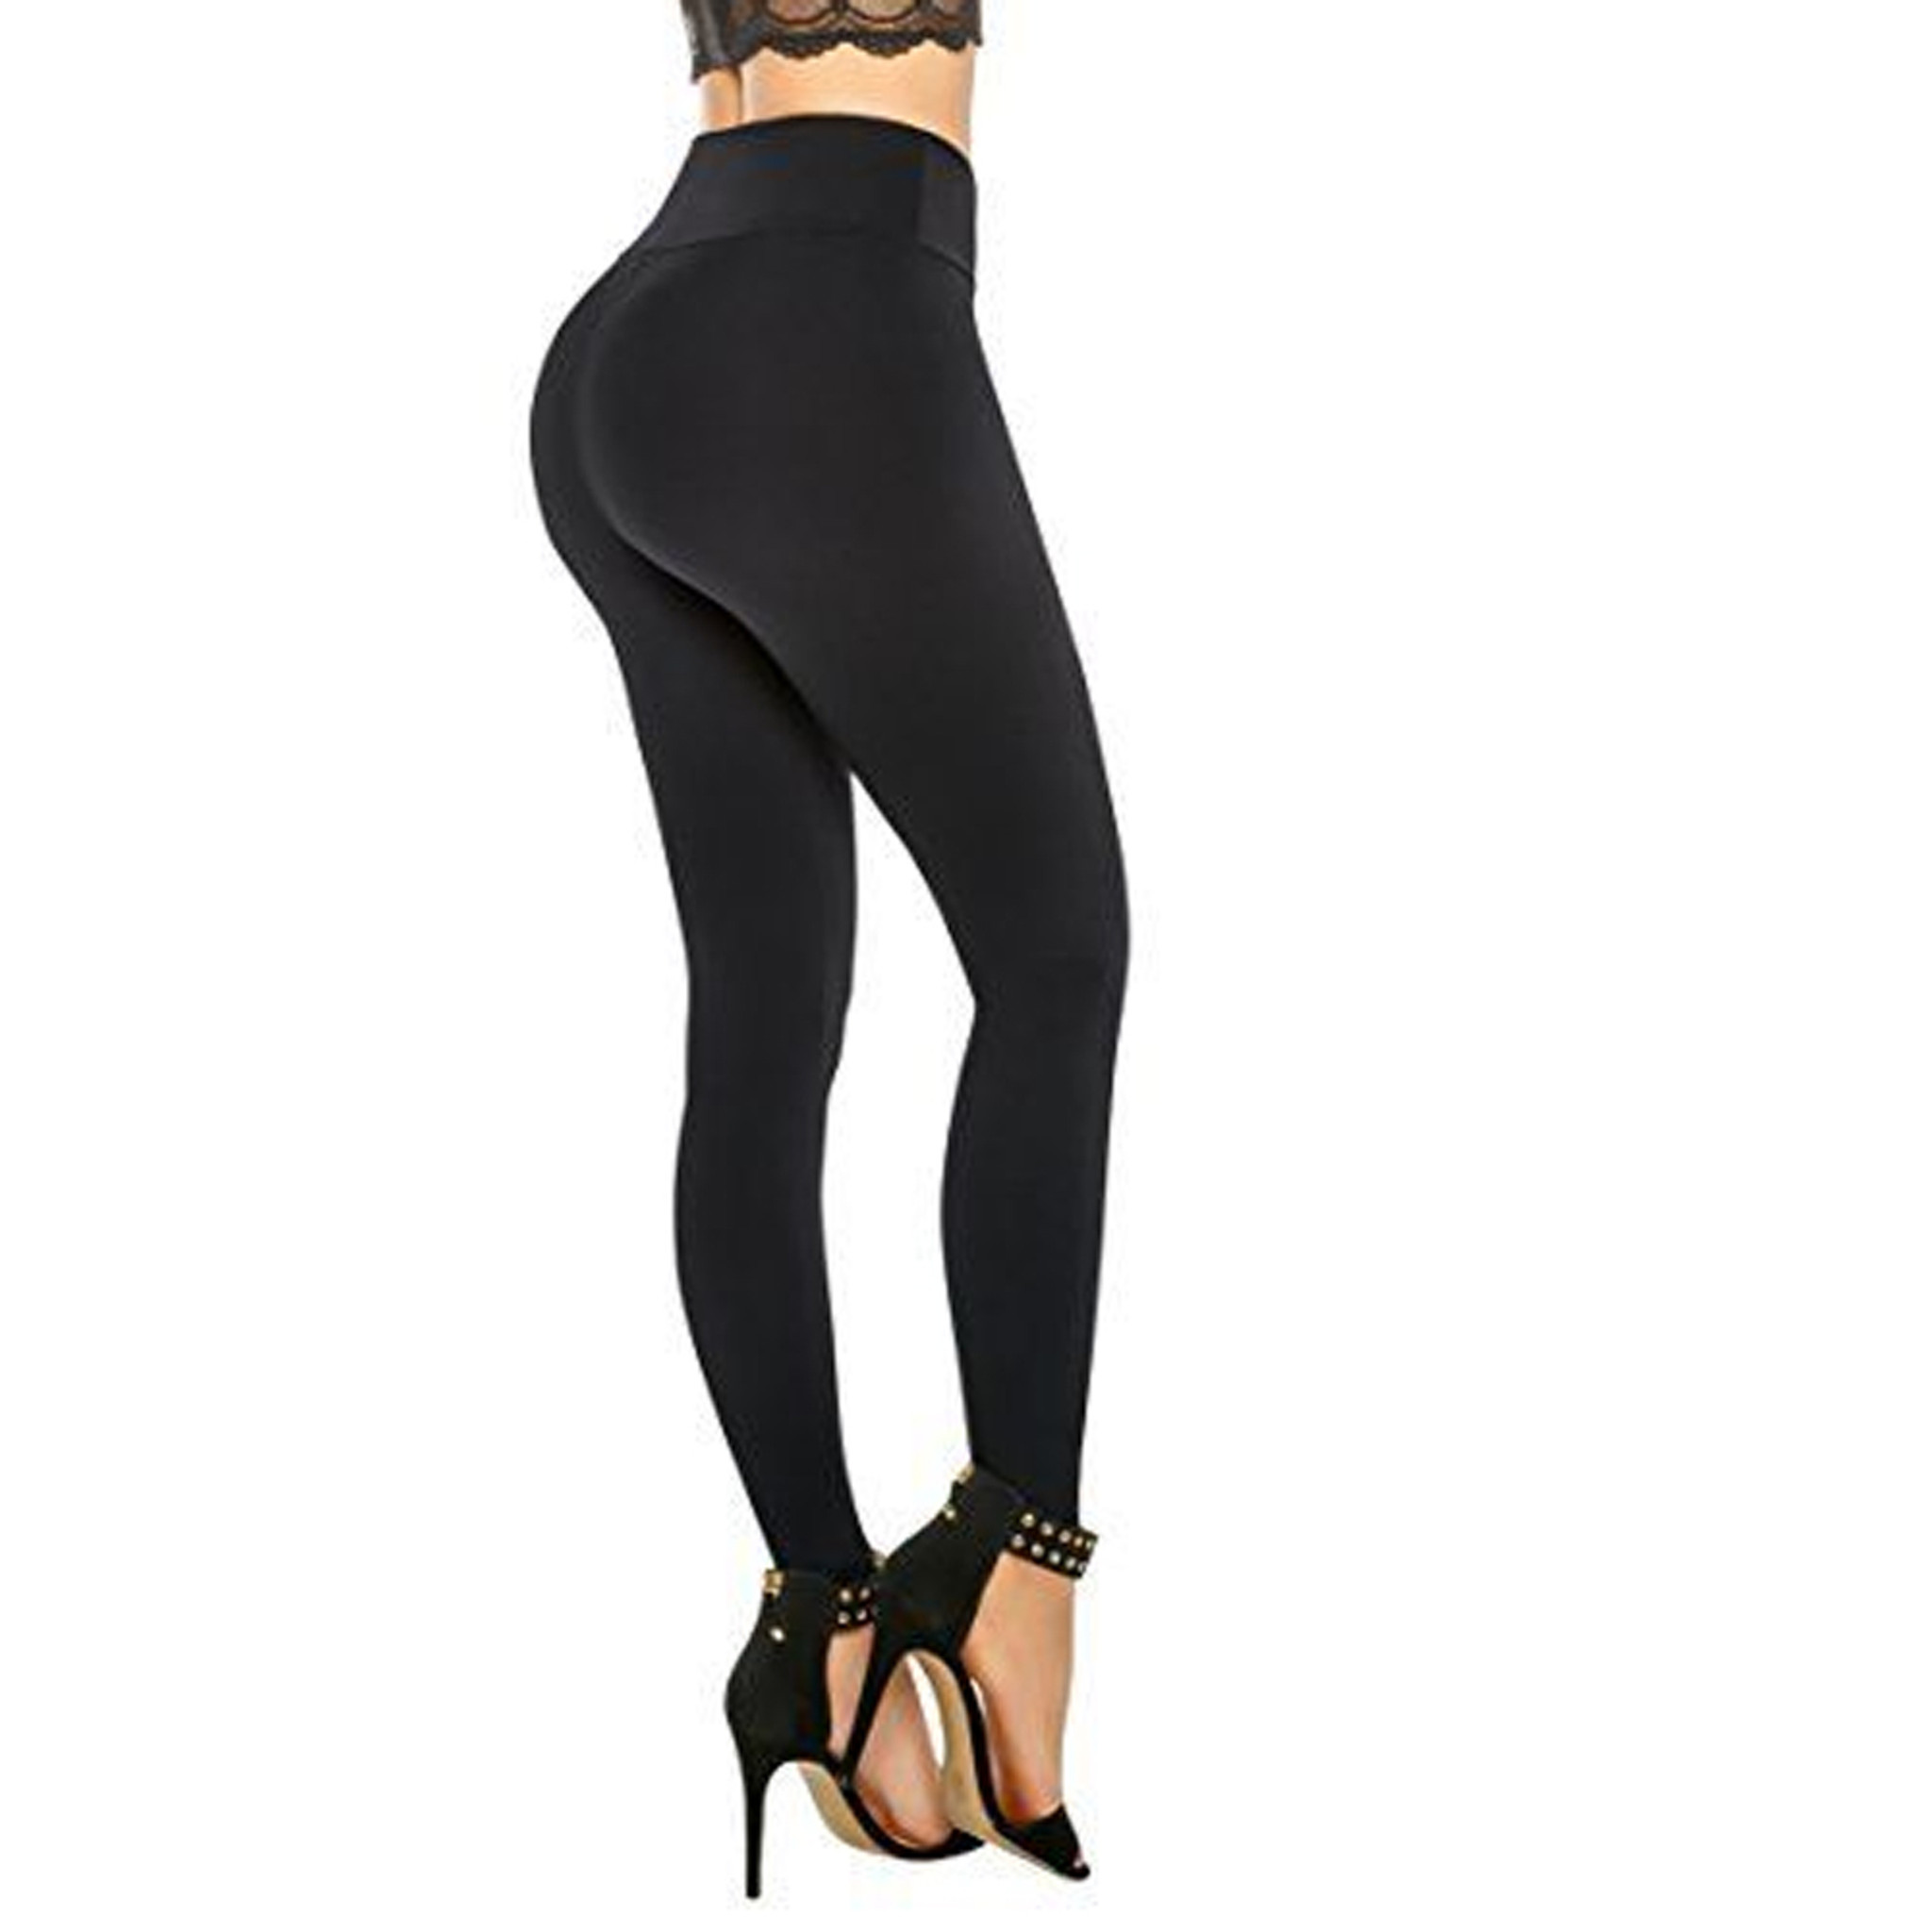 Women's Push Up Pants Butt Lifting Leggings | Pantalones Colombianos Levanta Cola  Nevada